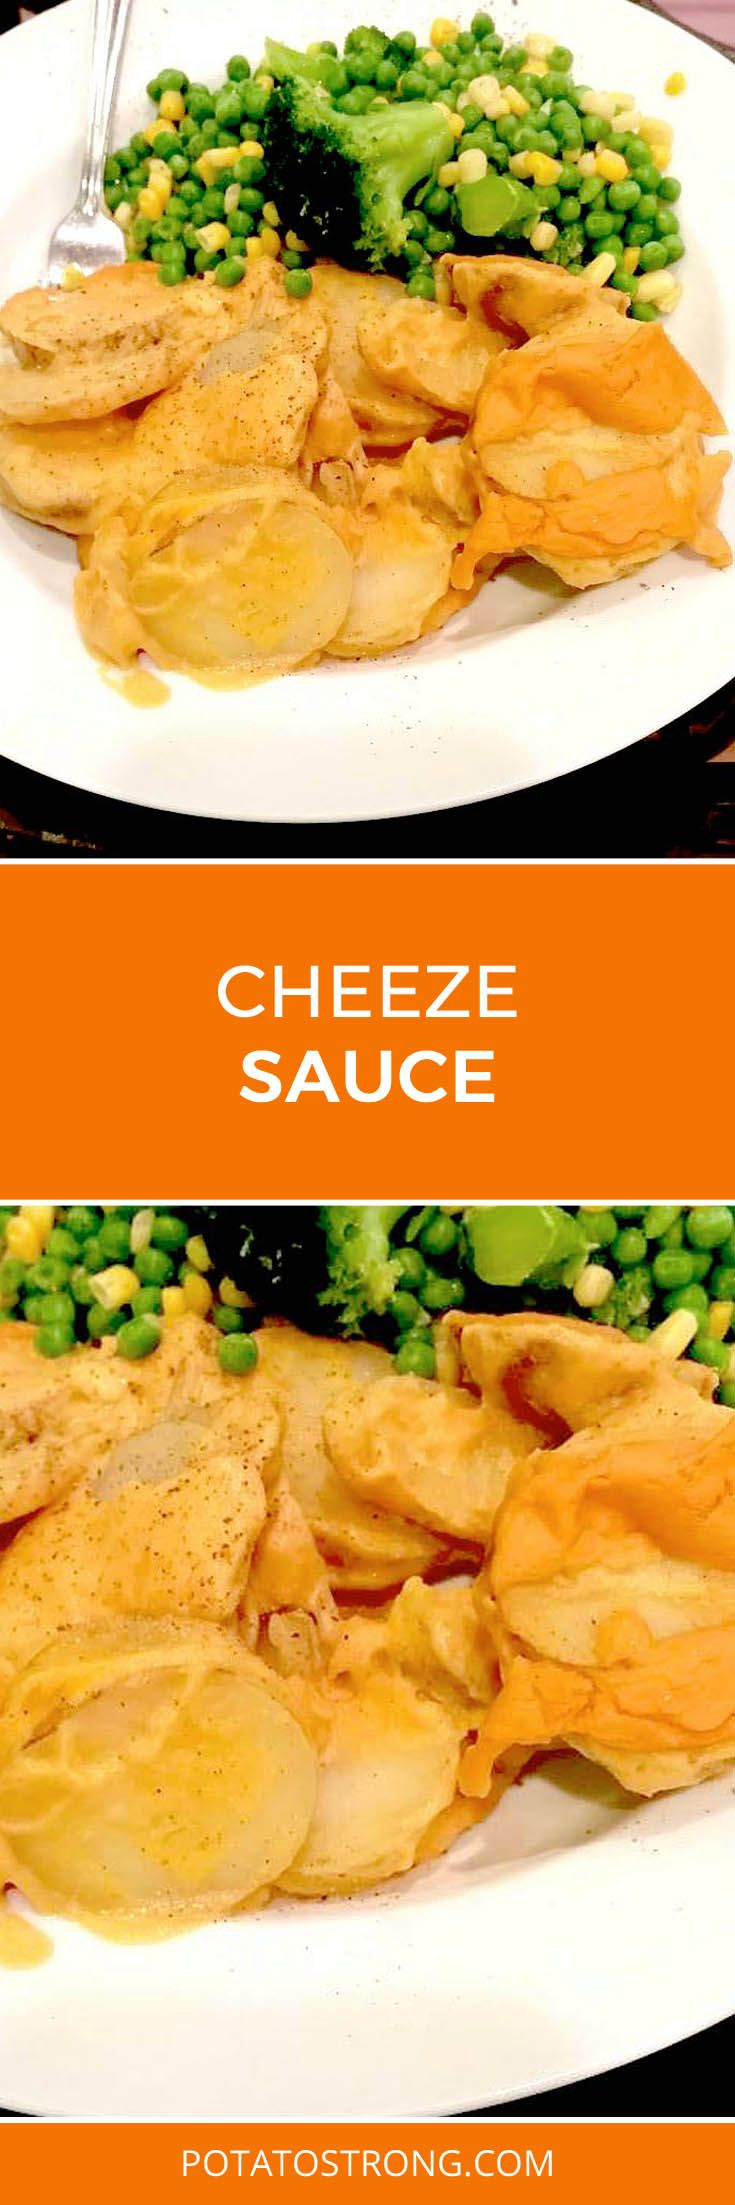 Cheeze sauce vegan no oil